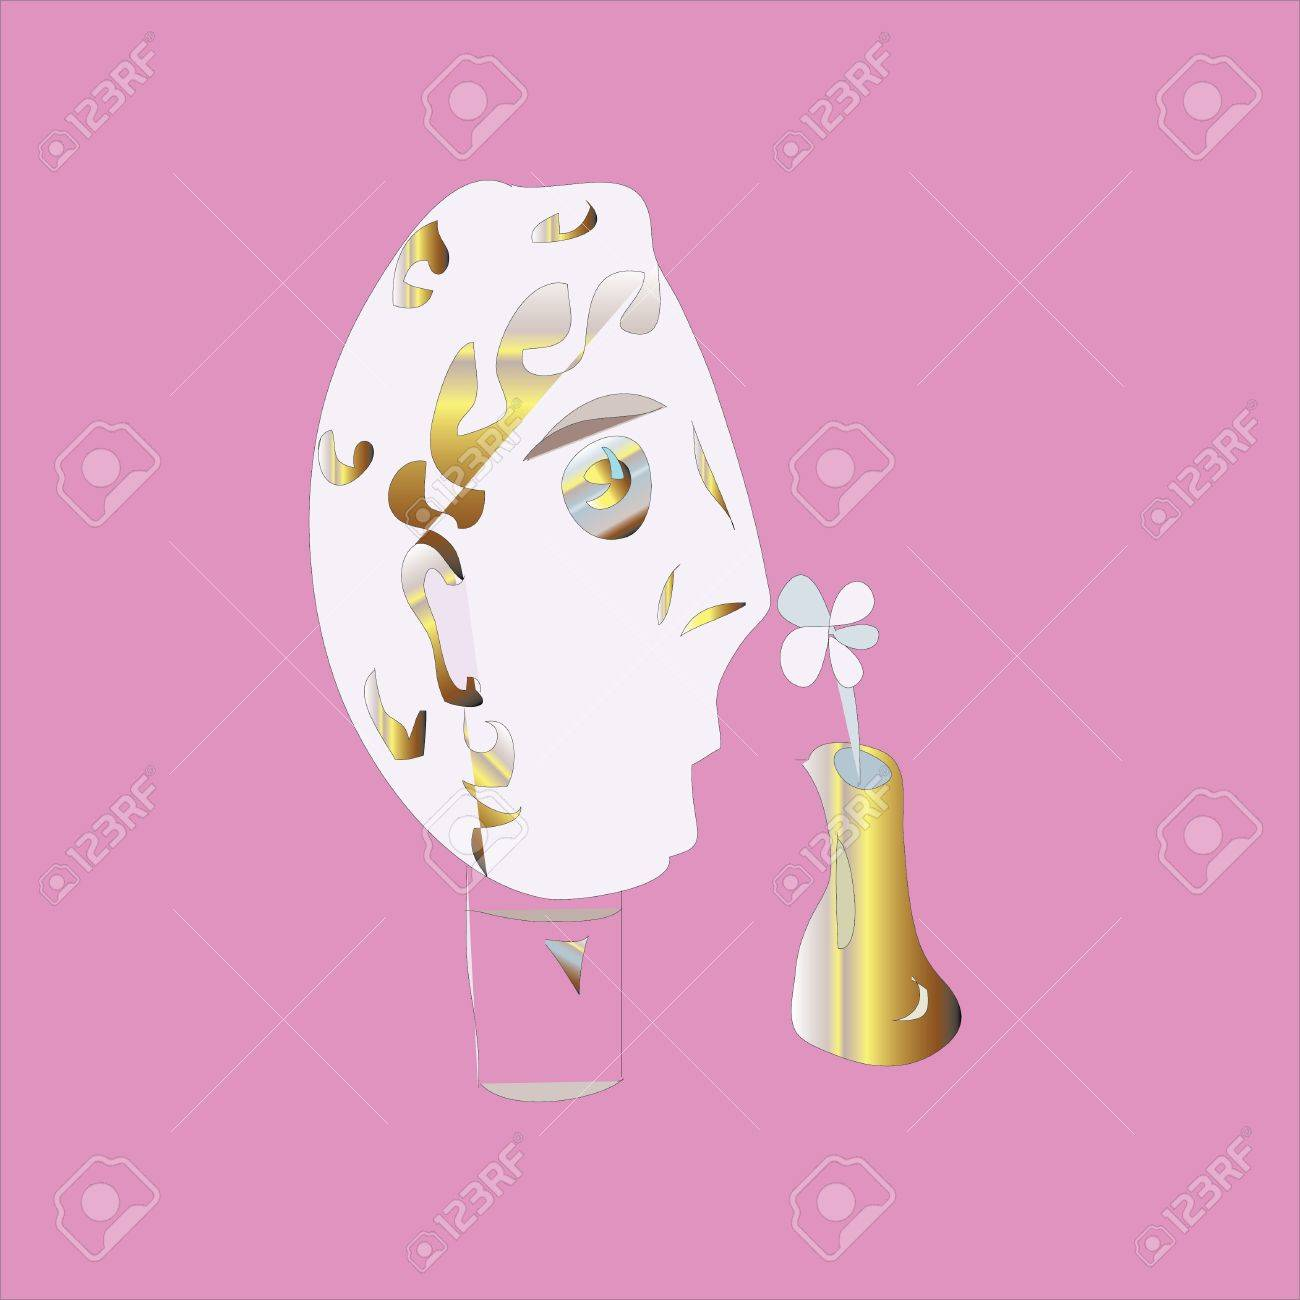 Man smelling a flower and chamomile wondering - likes, dislikes Stock Vector - 21645011